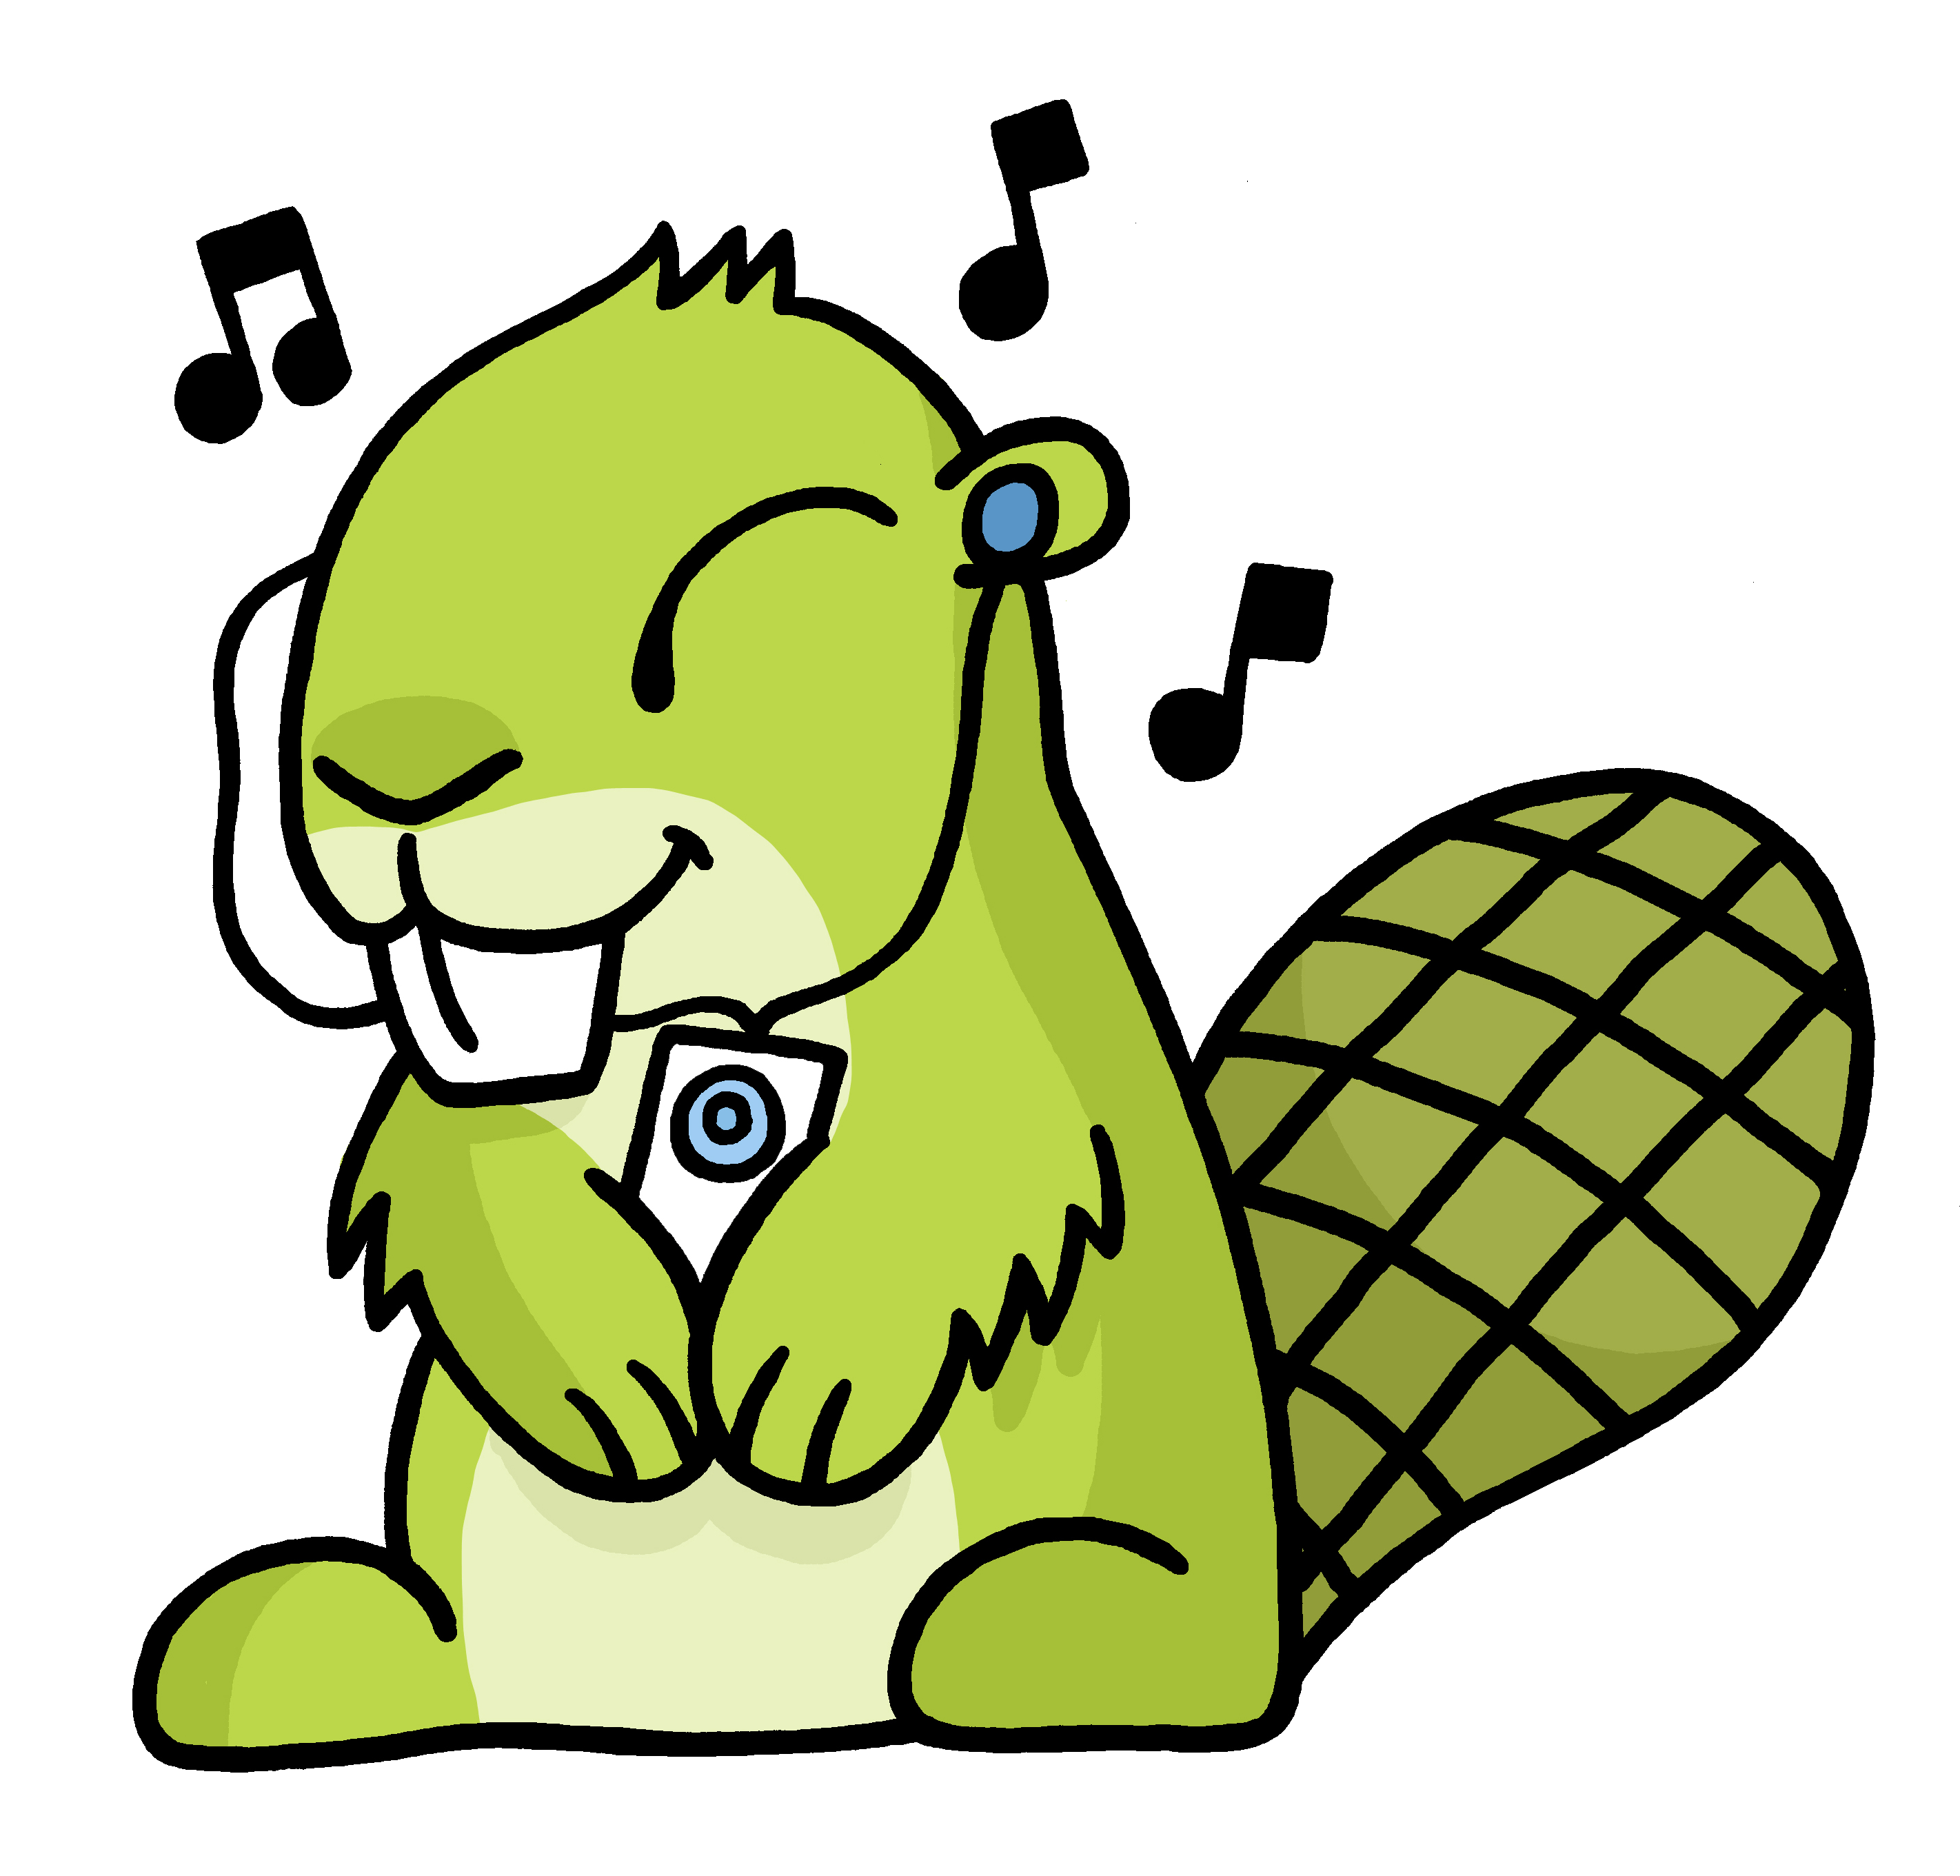 Listen clipart png. To music adsy transparent